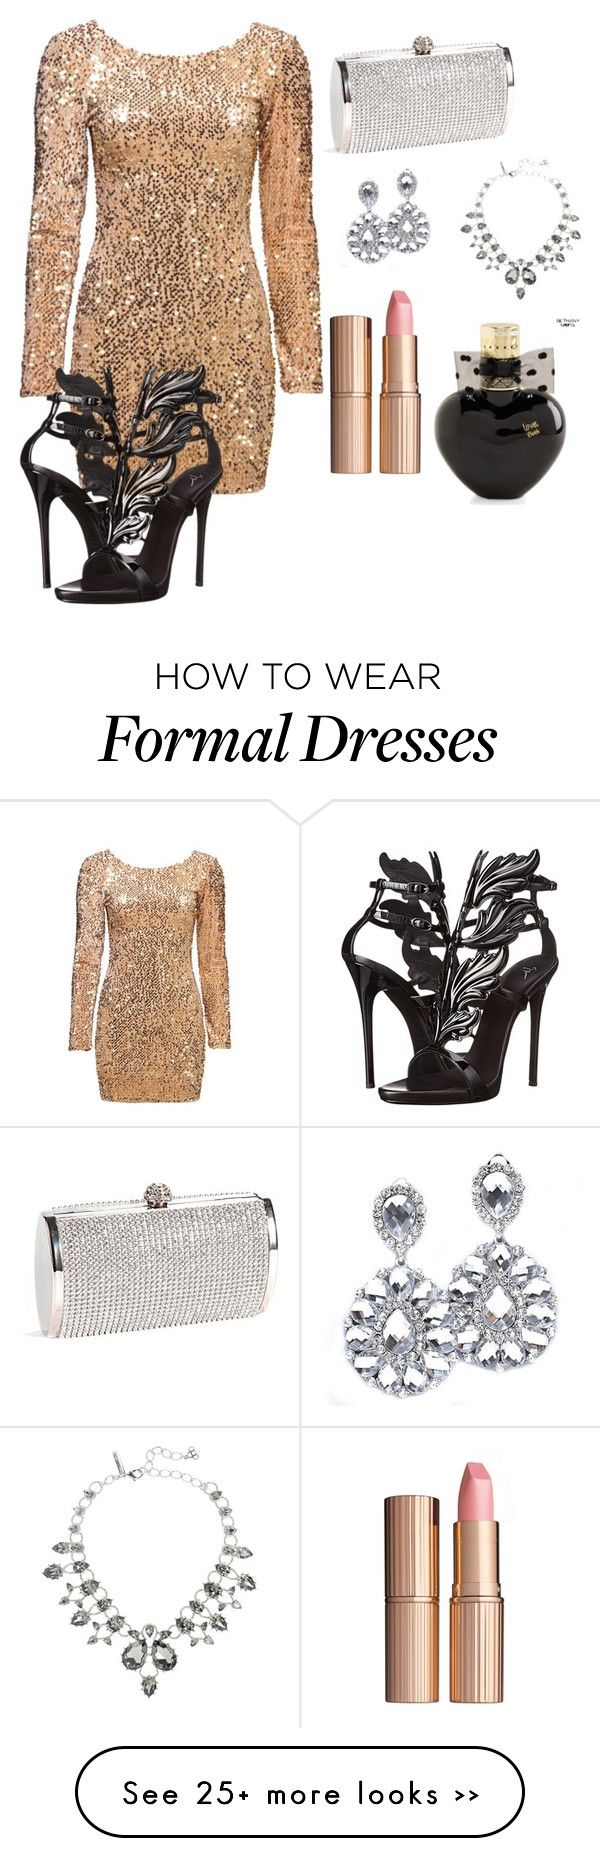 """Night on the town"" by emilystoneman on Polyvore featuring Giuseppe Zanotti, Oscar de la Renta, Charlotte Tilbury and Aéropostale"